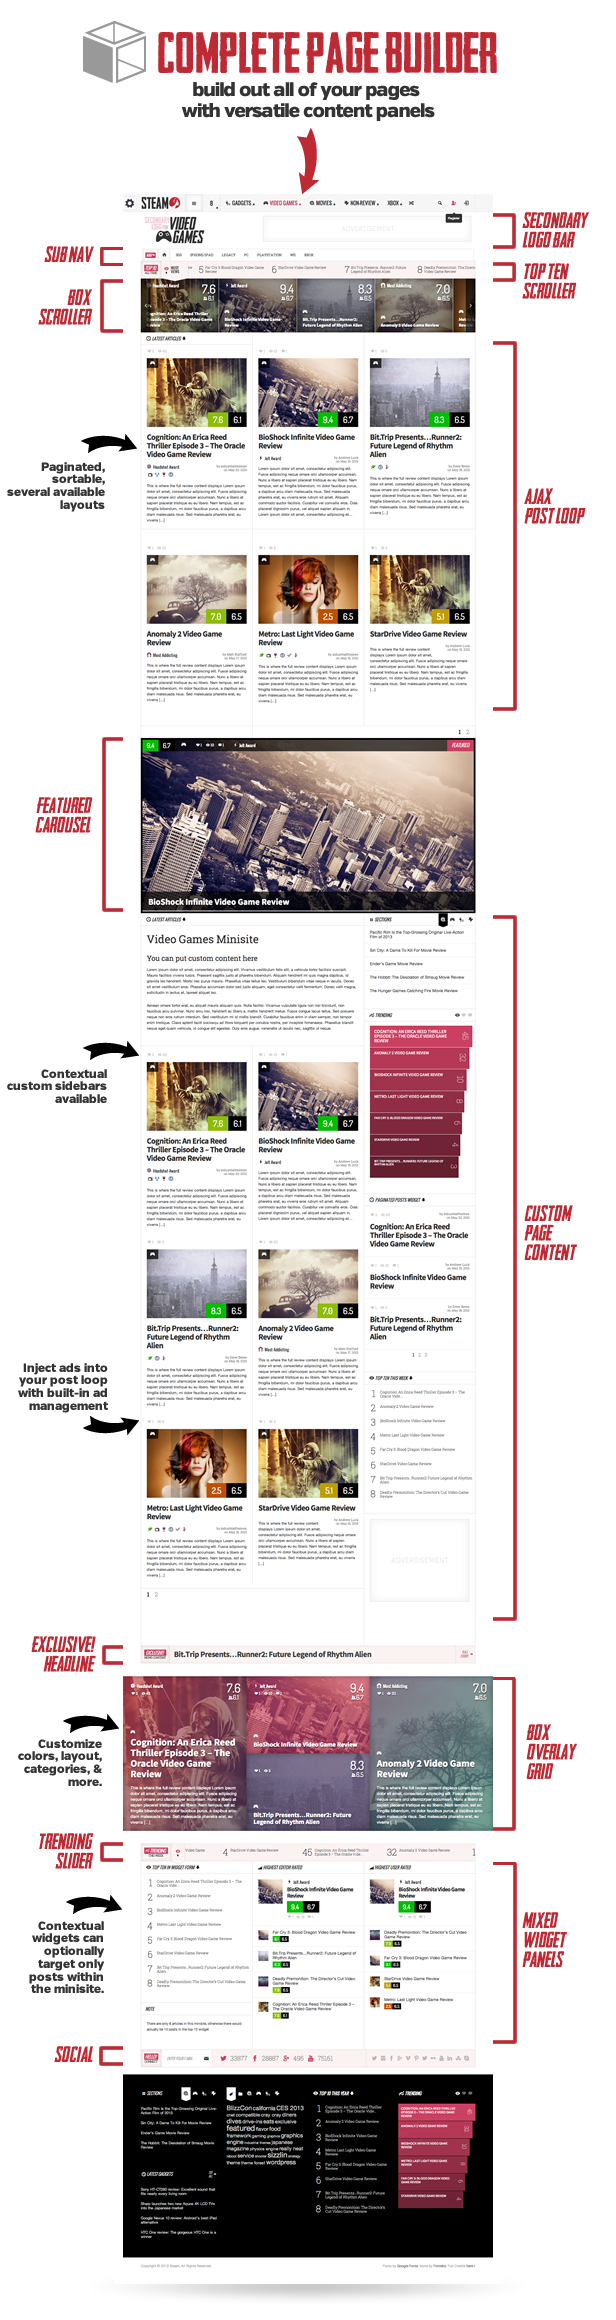 Steam - Responsive Retina Review Magazine Theme  Steam - Responsive Retina Review Magazine Theme  Steam - Responsive Retina Review Magazine Theme  Steam - Responsive Retina Review Magazine Theme